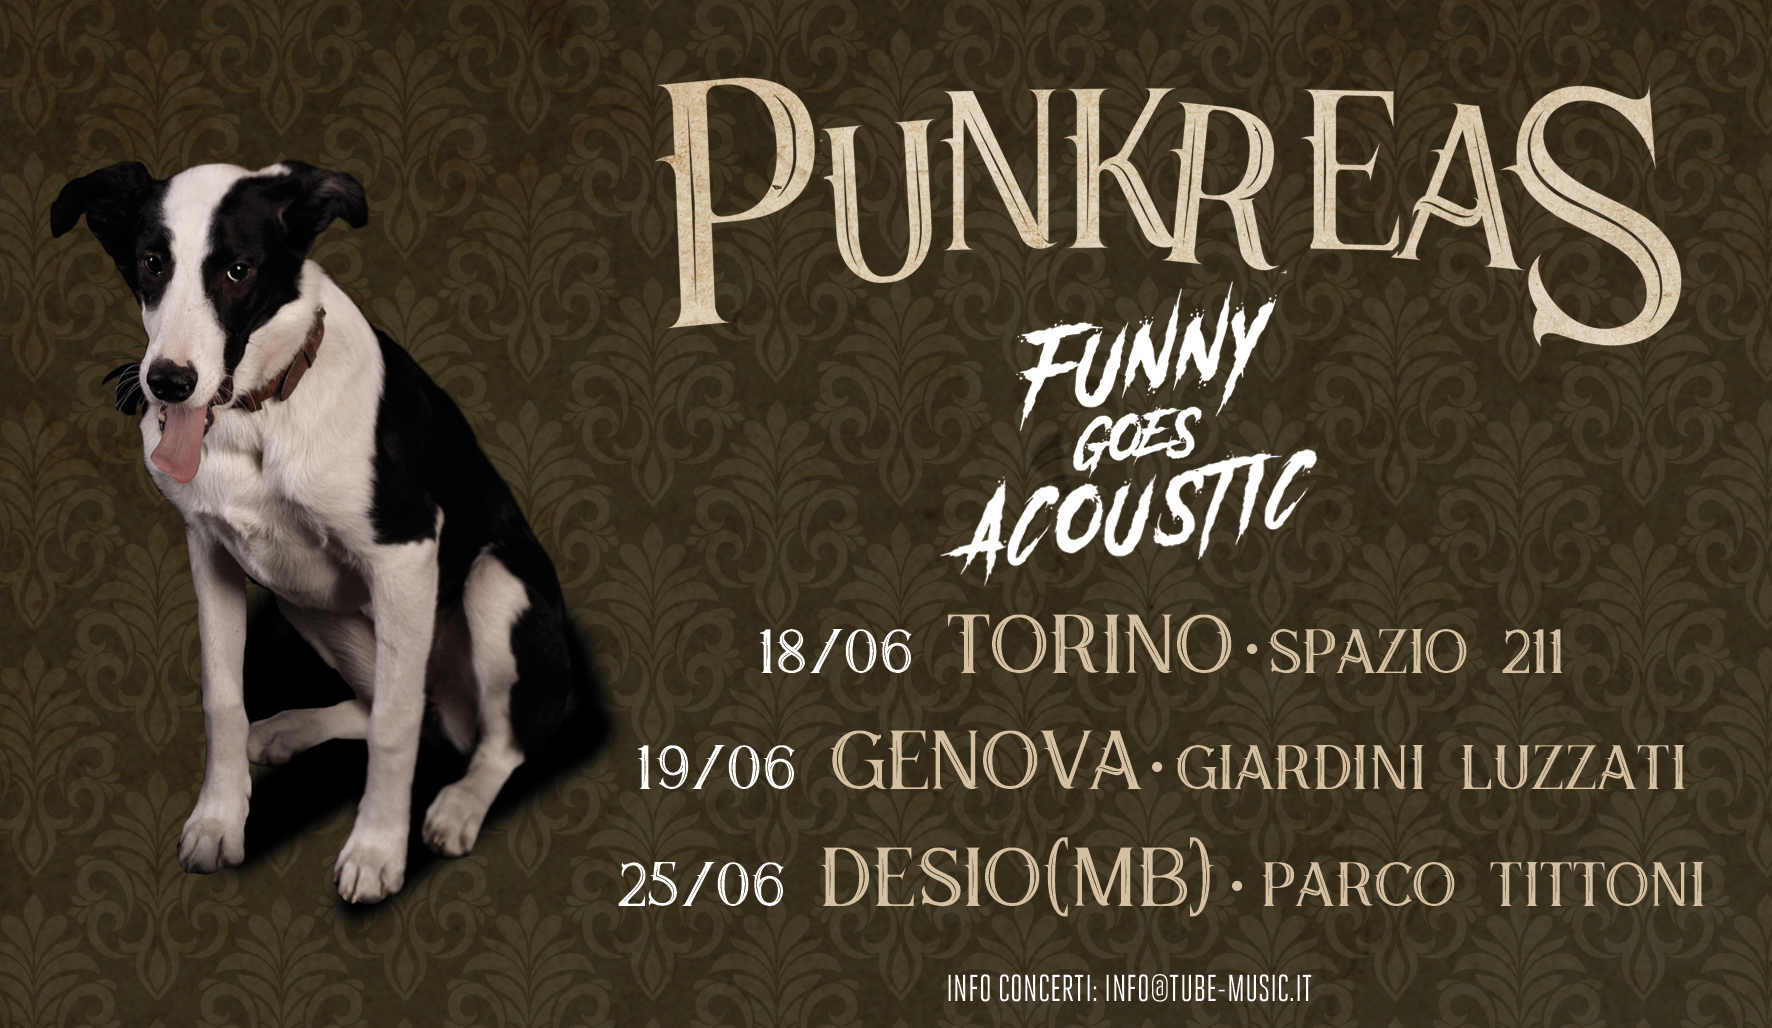 PUNKREAS - Funny Goes Acoustic - Banner date